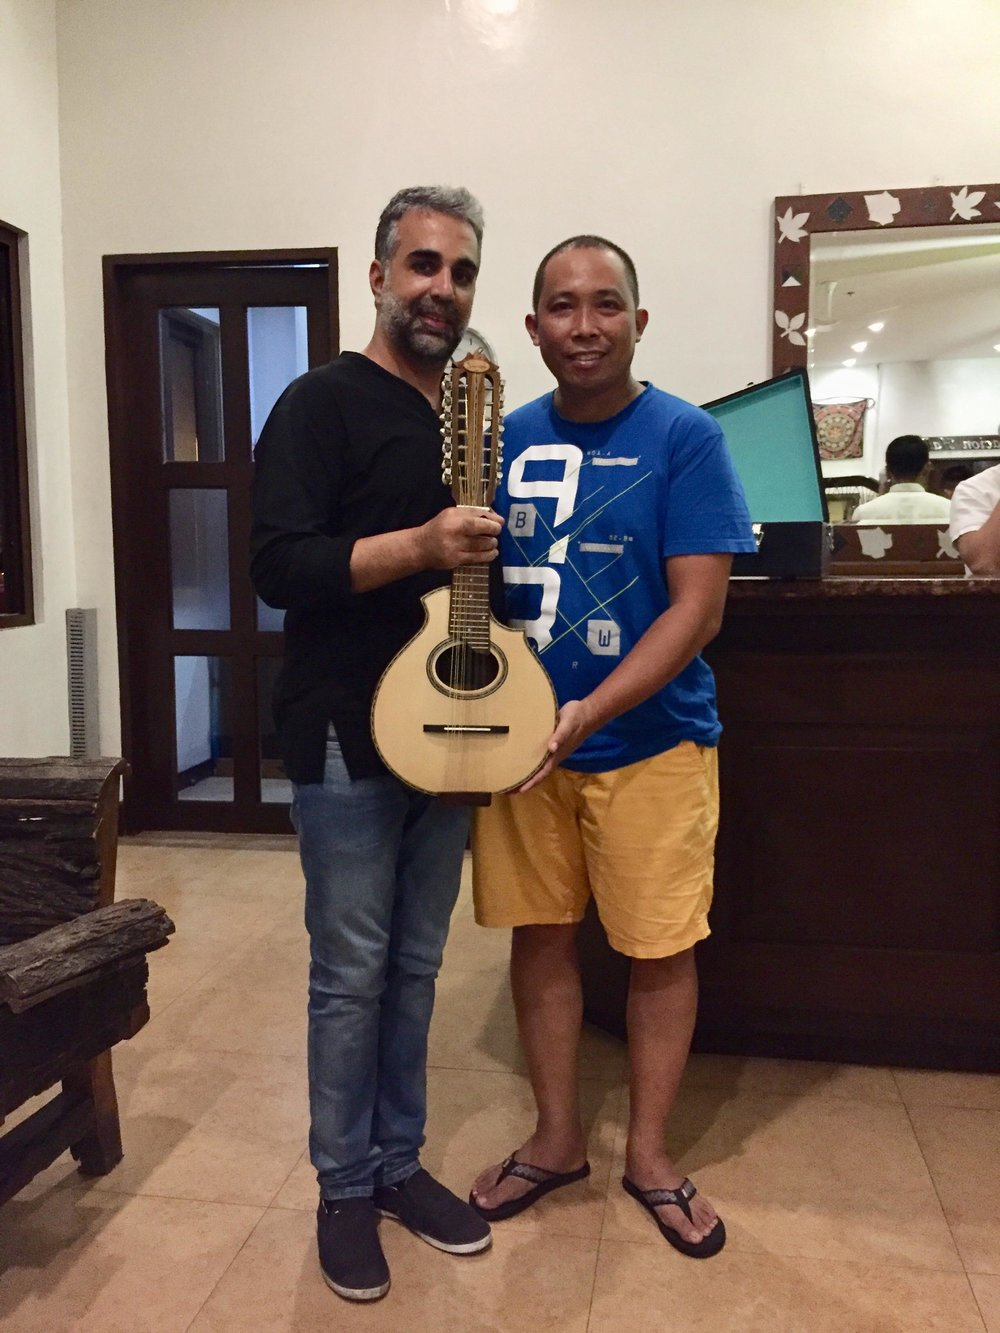 Jacob receiving the present from the instrument maker Jay Sarita